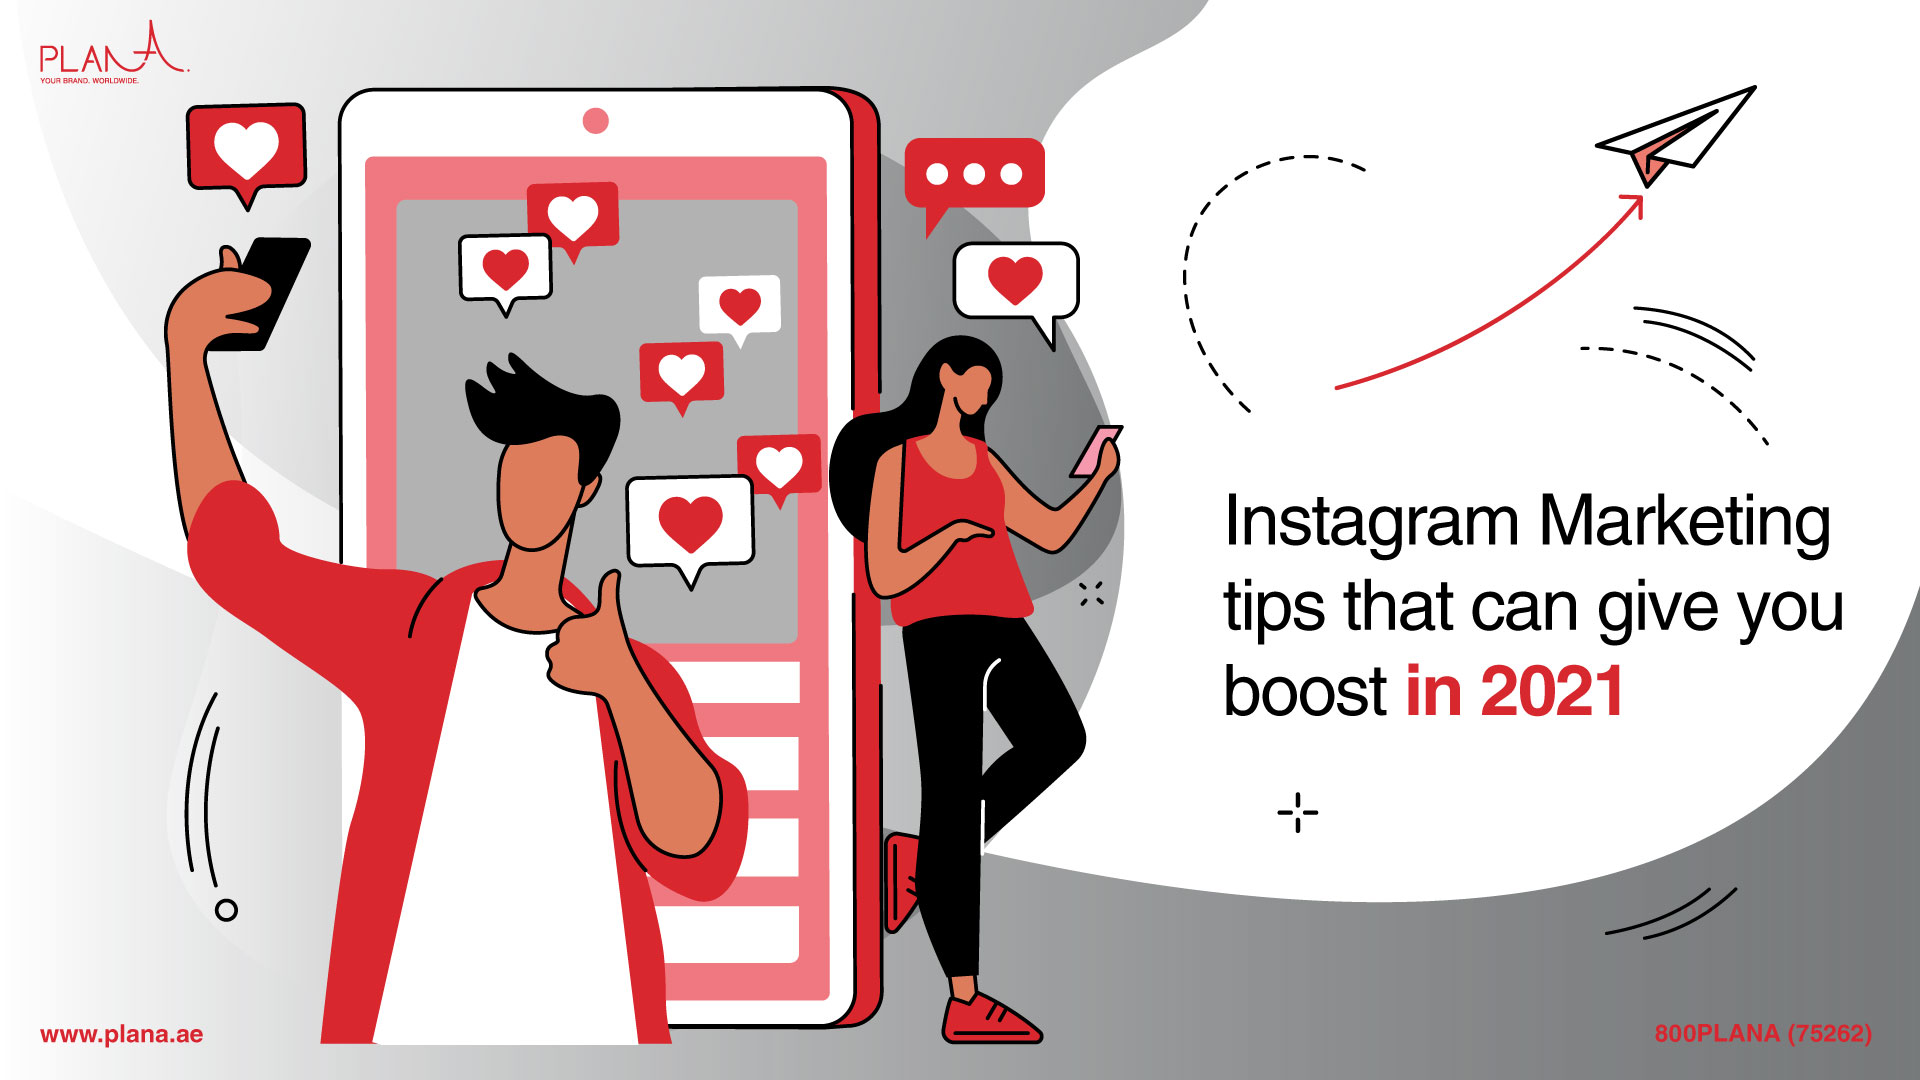 Instagram Marketing Tips that can give you boost in 2021